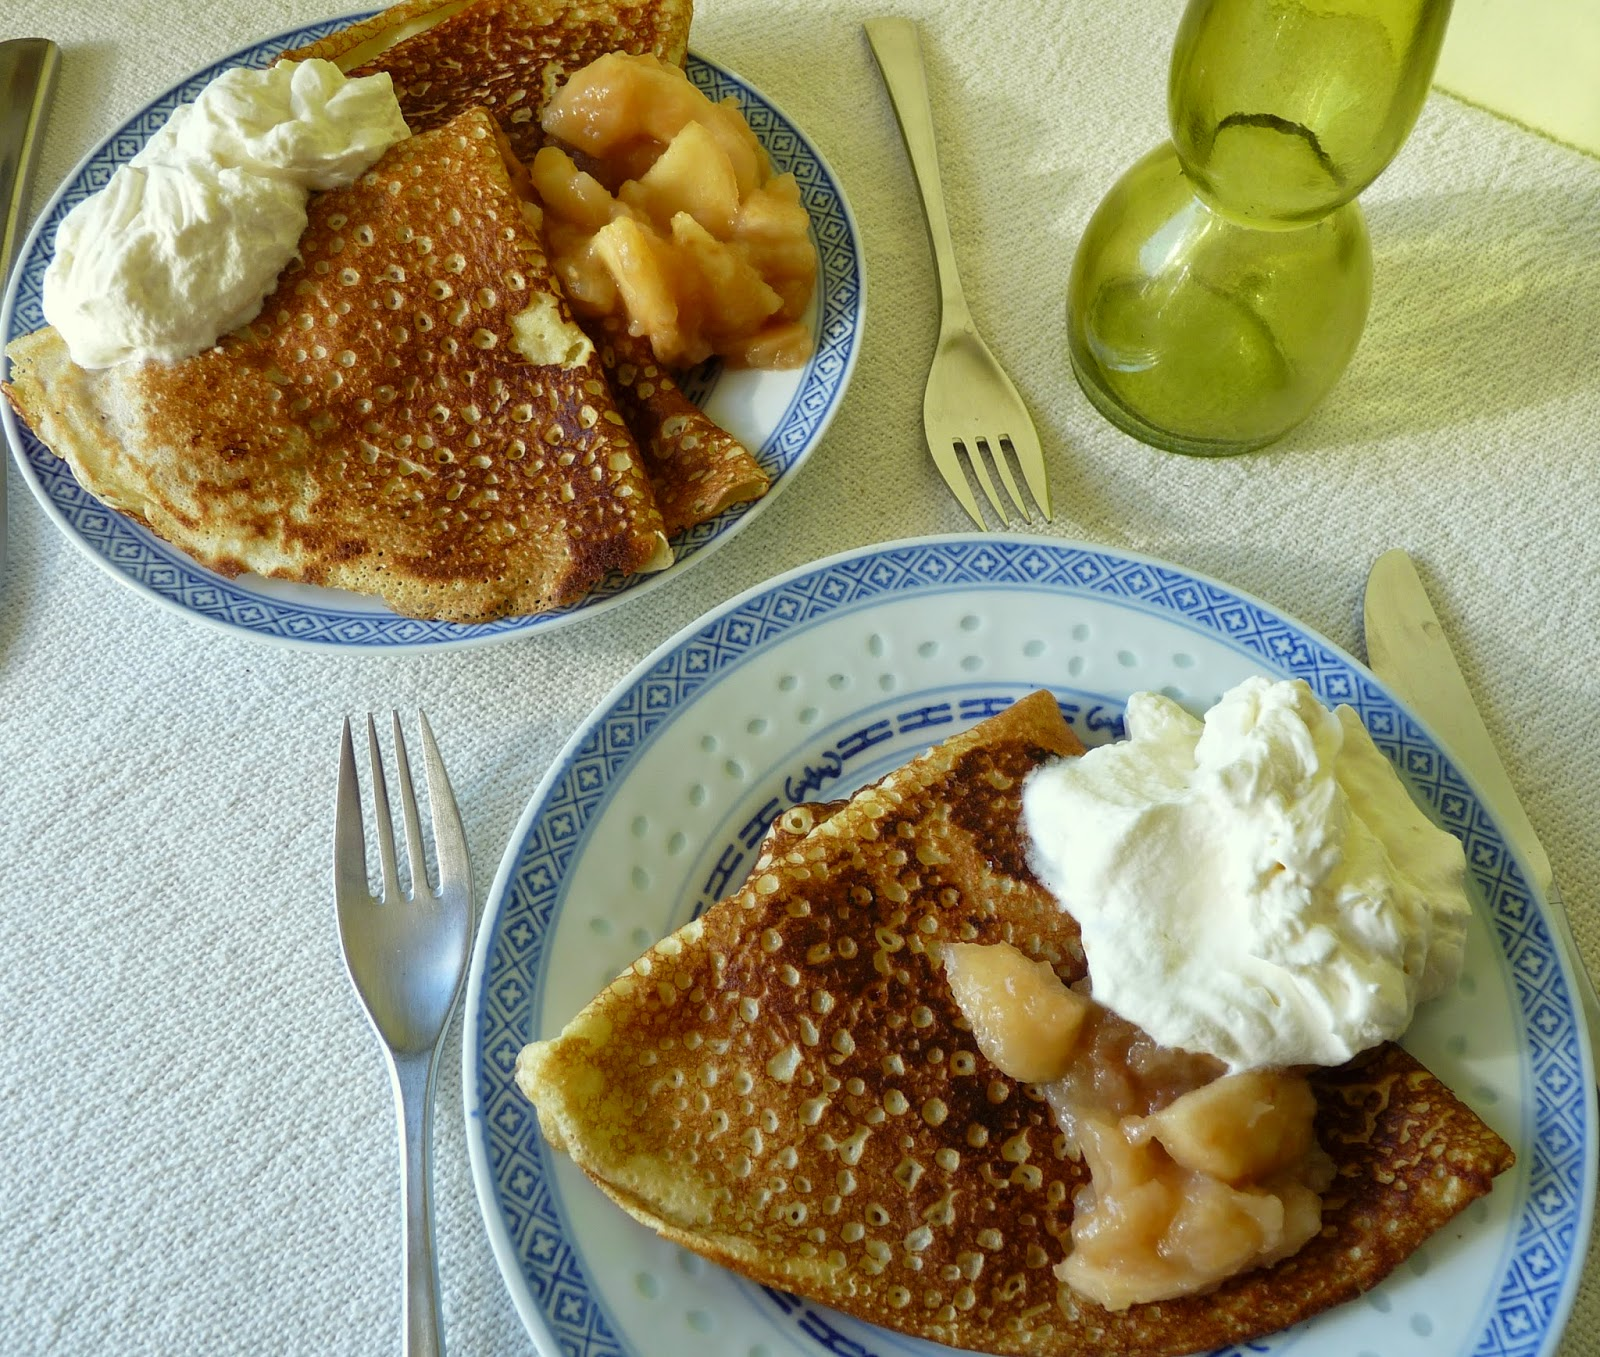 Crepes with Apple Sauce and Whipped Cream